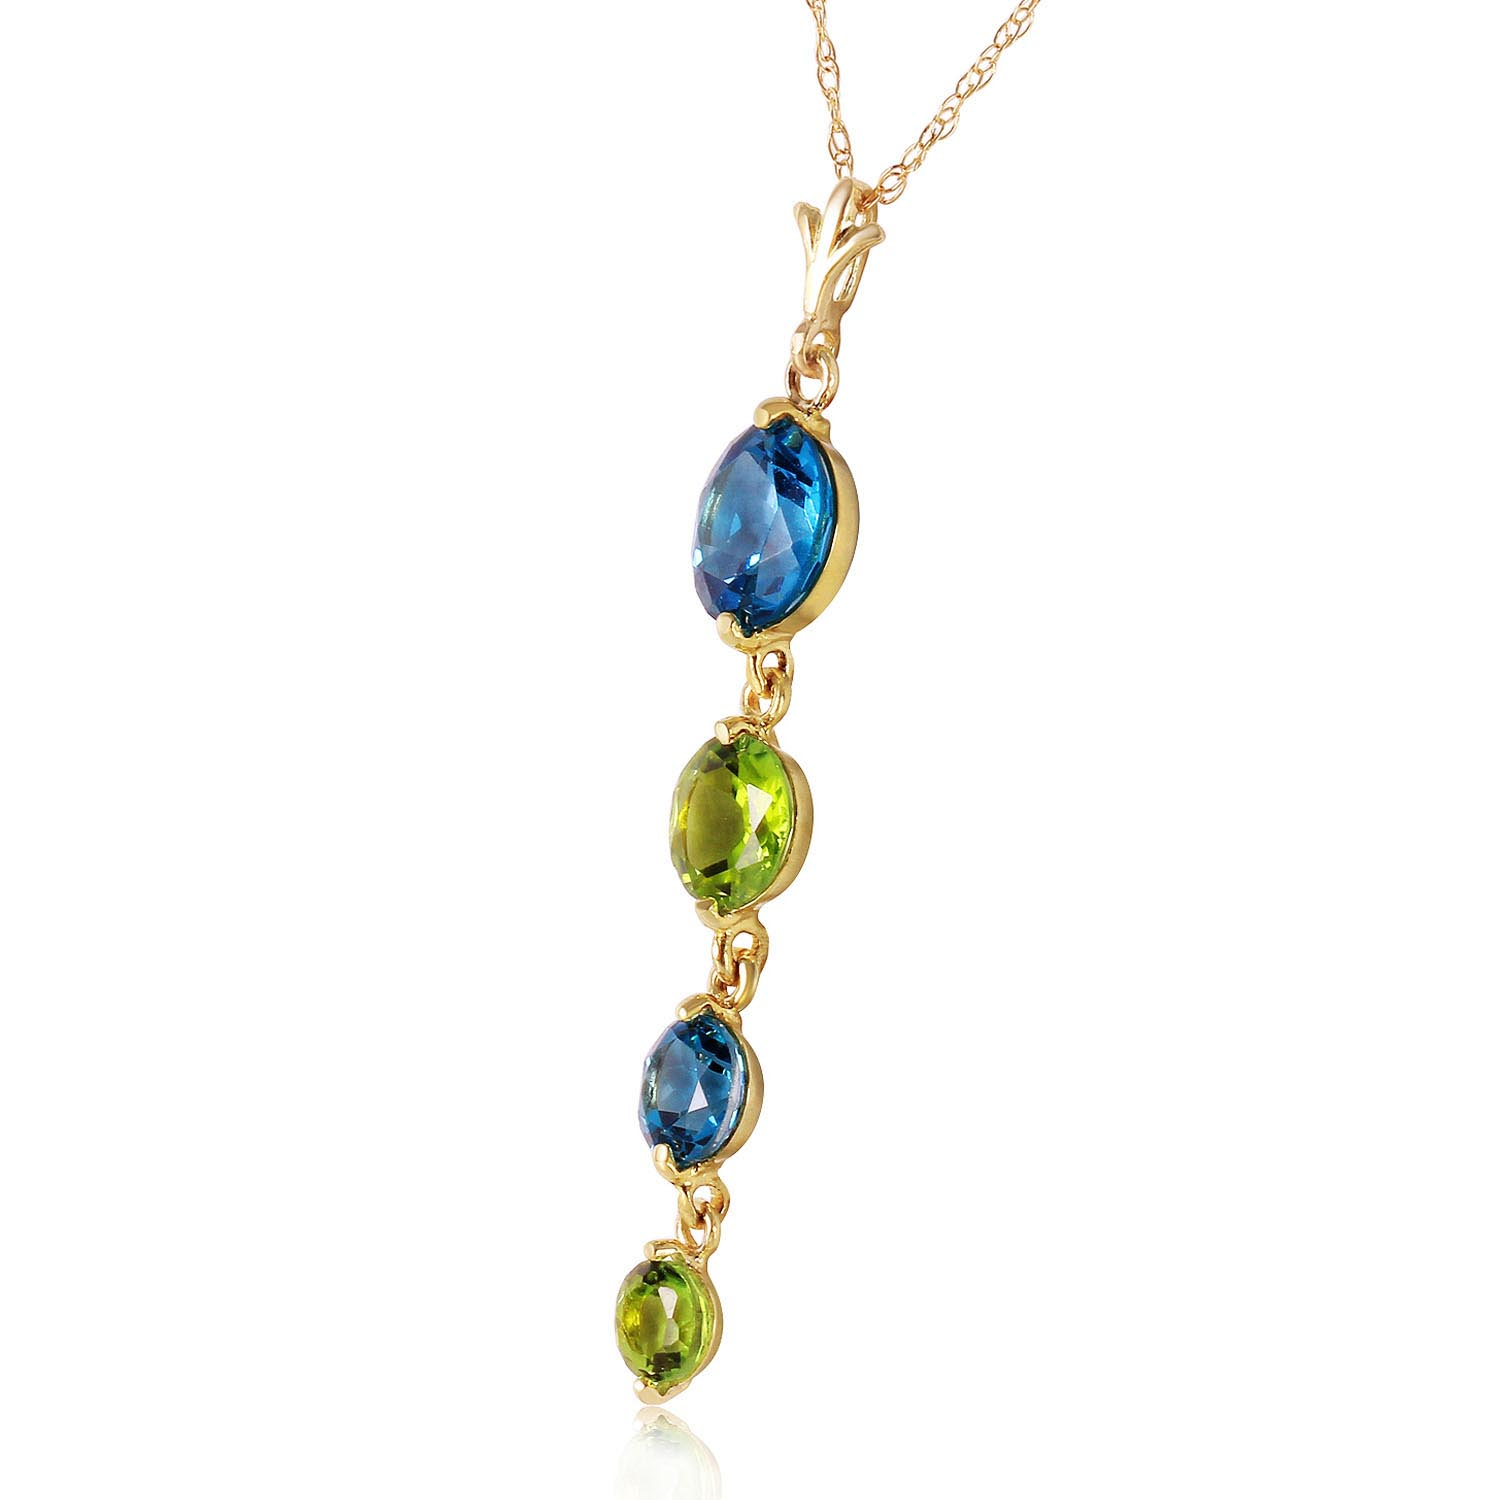 Blue Topaz and Peridot Quadruplo Pendant Necklace 3.14Kw in 14K Gold